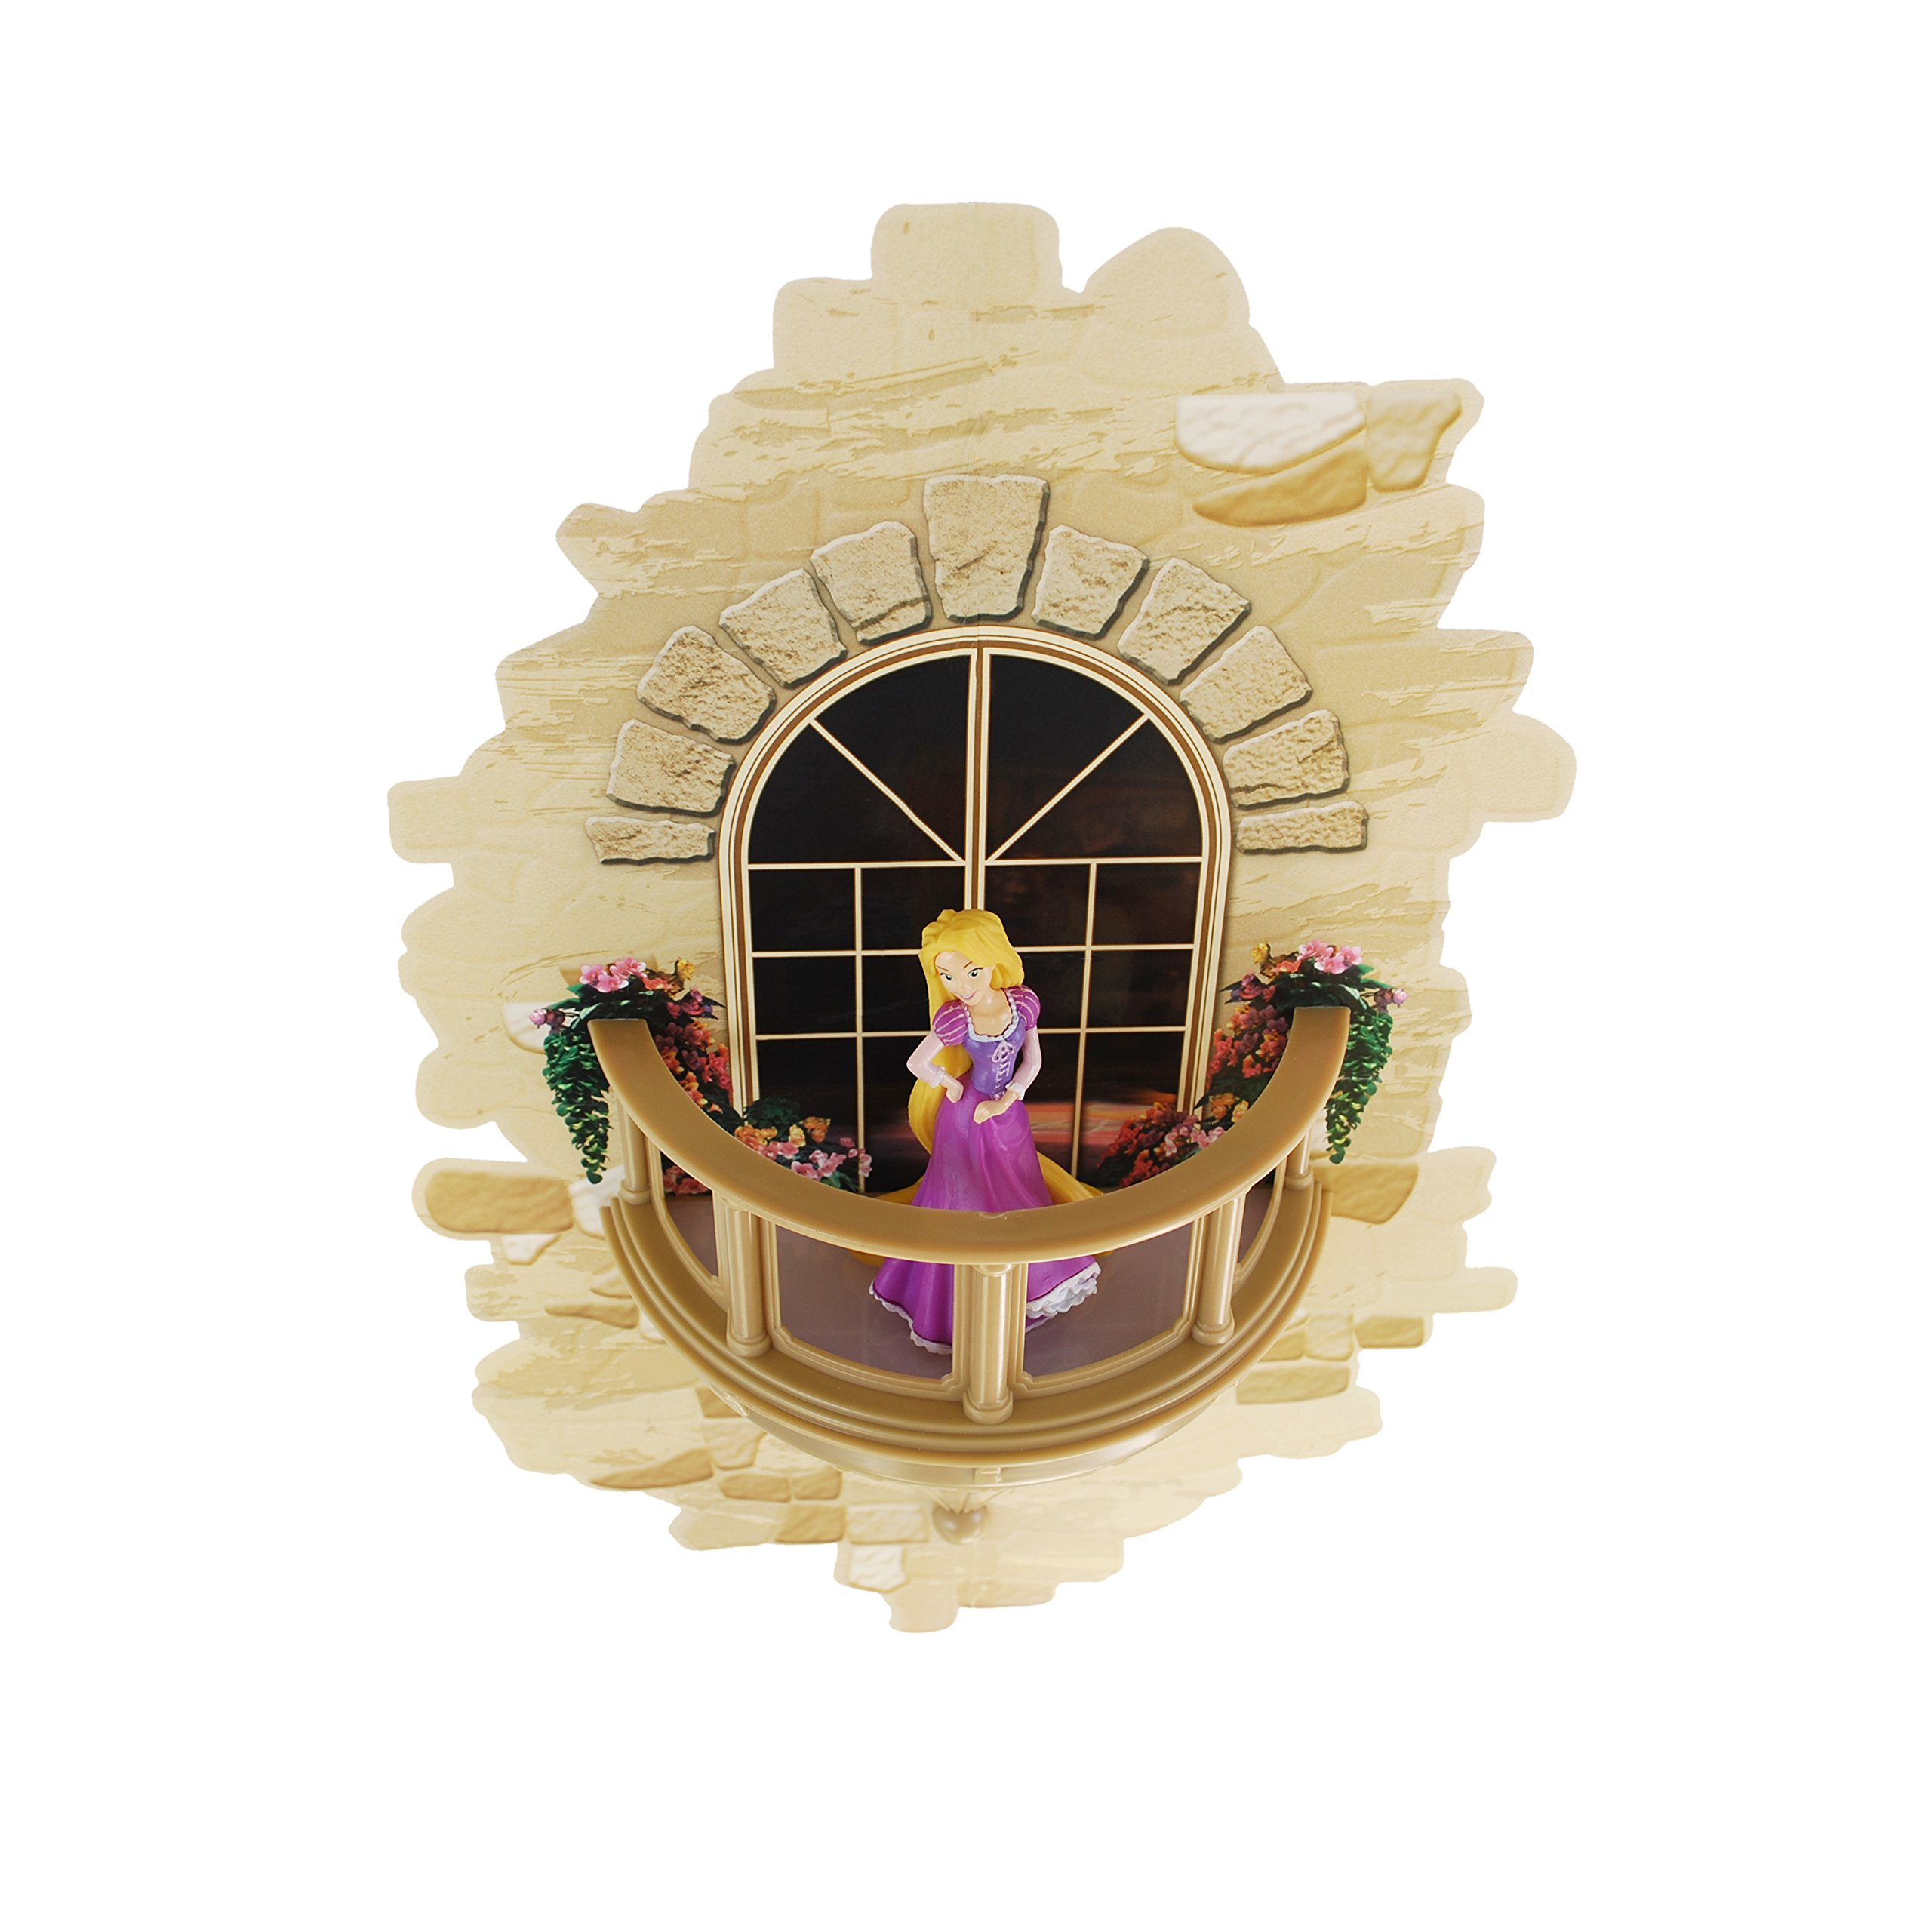 3DLightFX Disney Princess Rapunzel Balcony 3D Deco Light by 3DLightFX